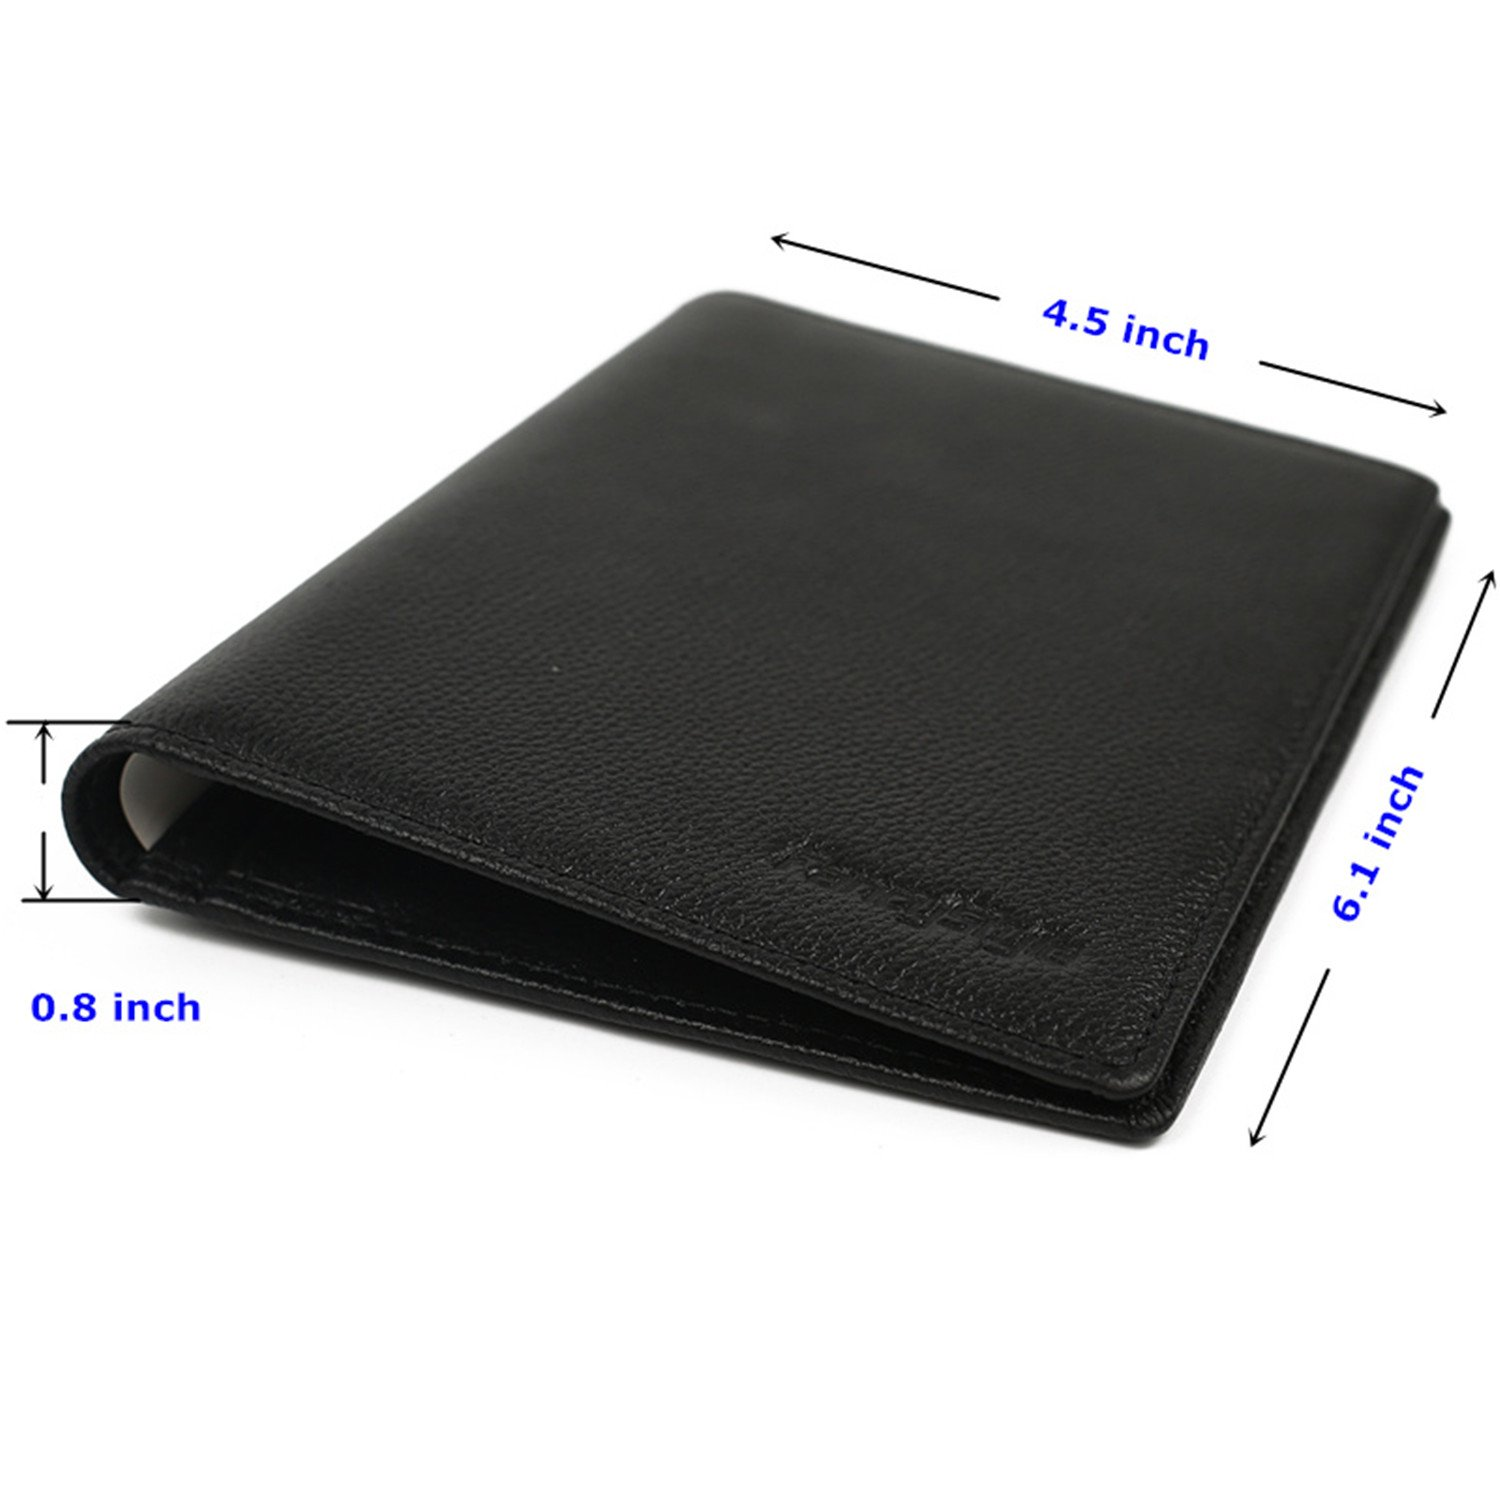 FancyStyle RFID Blocking Travel Wallet & Passport Holder Unisex Genuine Leather Black